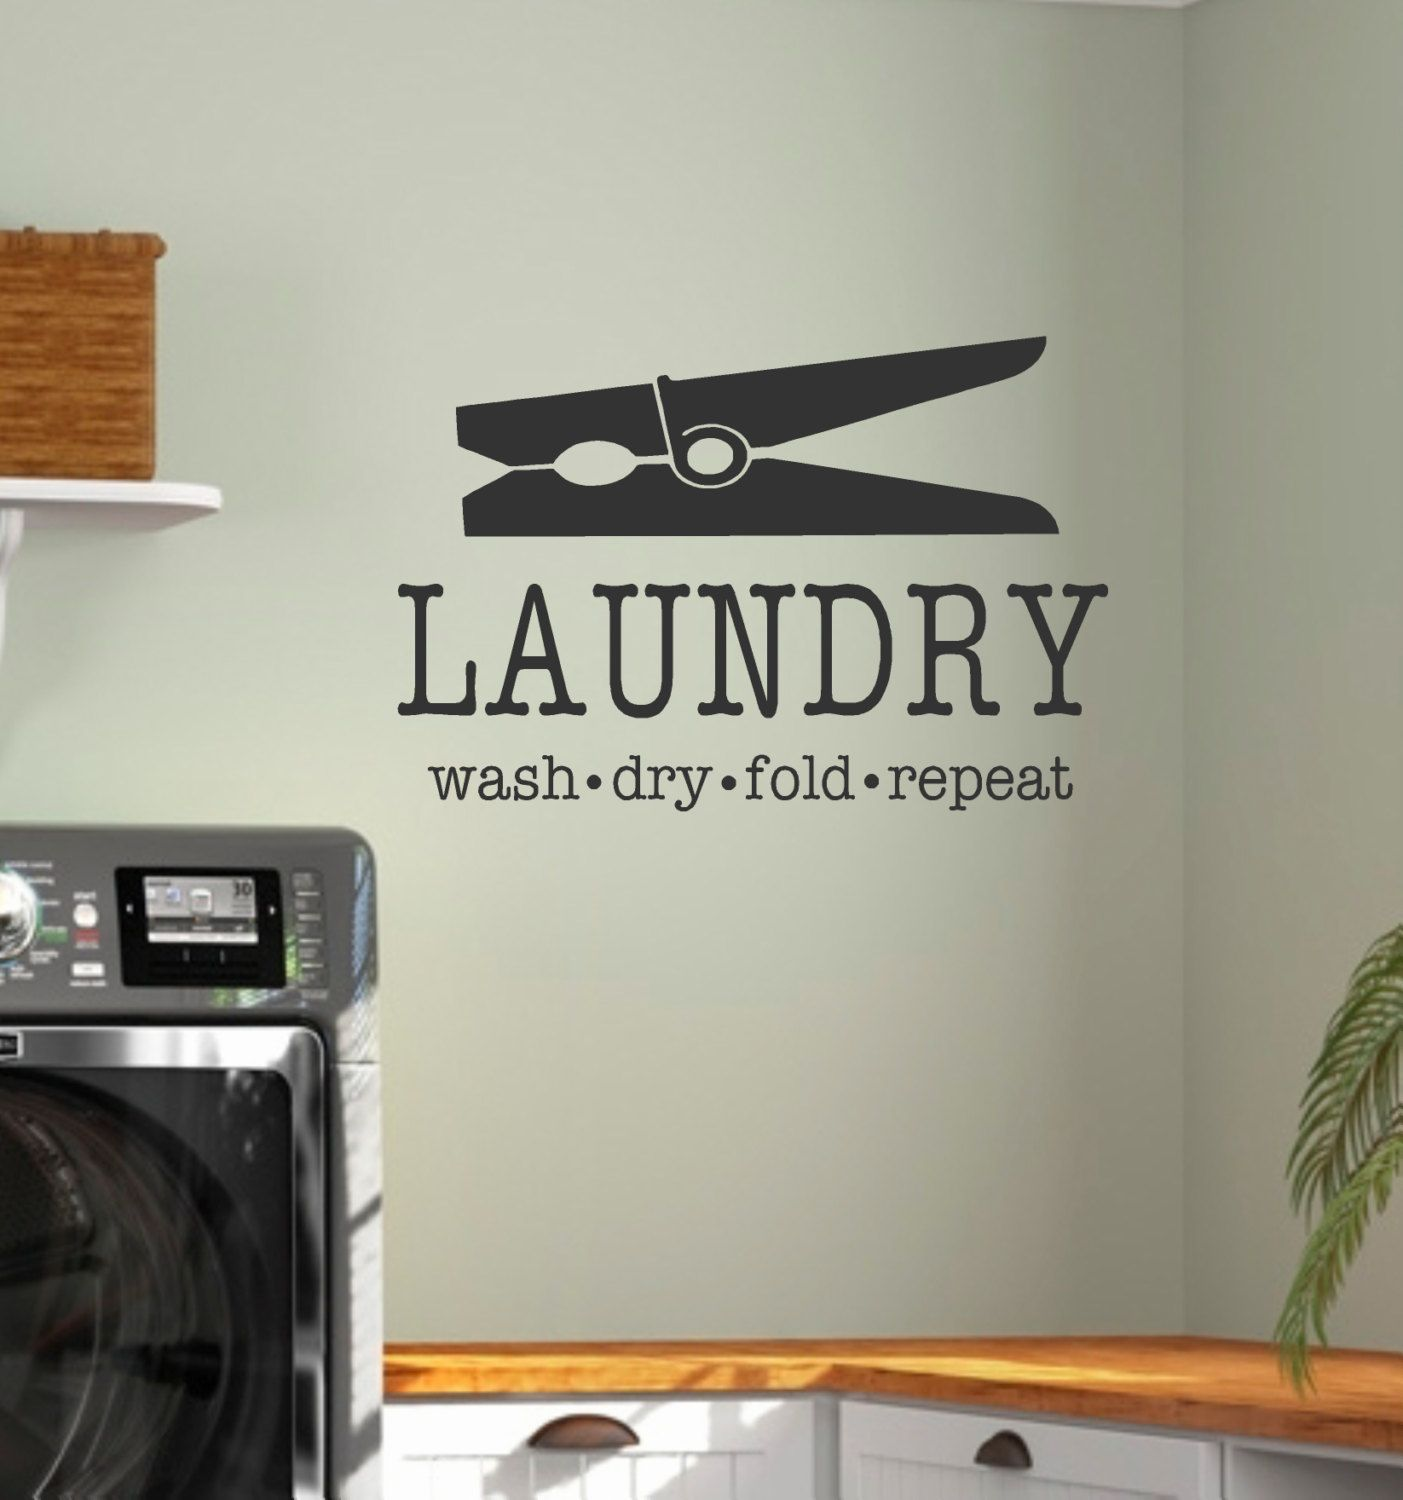 Laundry Room Decor Laundry Sign Laundry Room Decal Laundry Decal Laundry Room Sign Vinyl Wall Decal Laundry Room WD0043